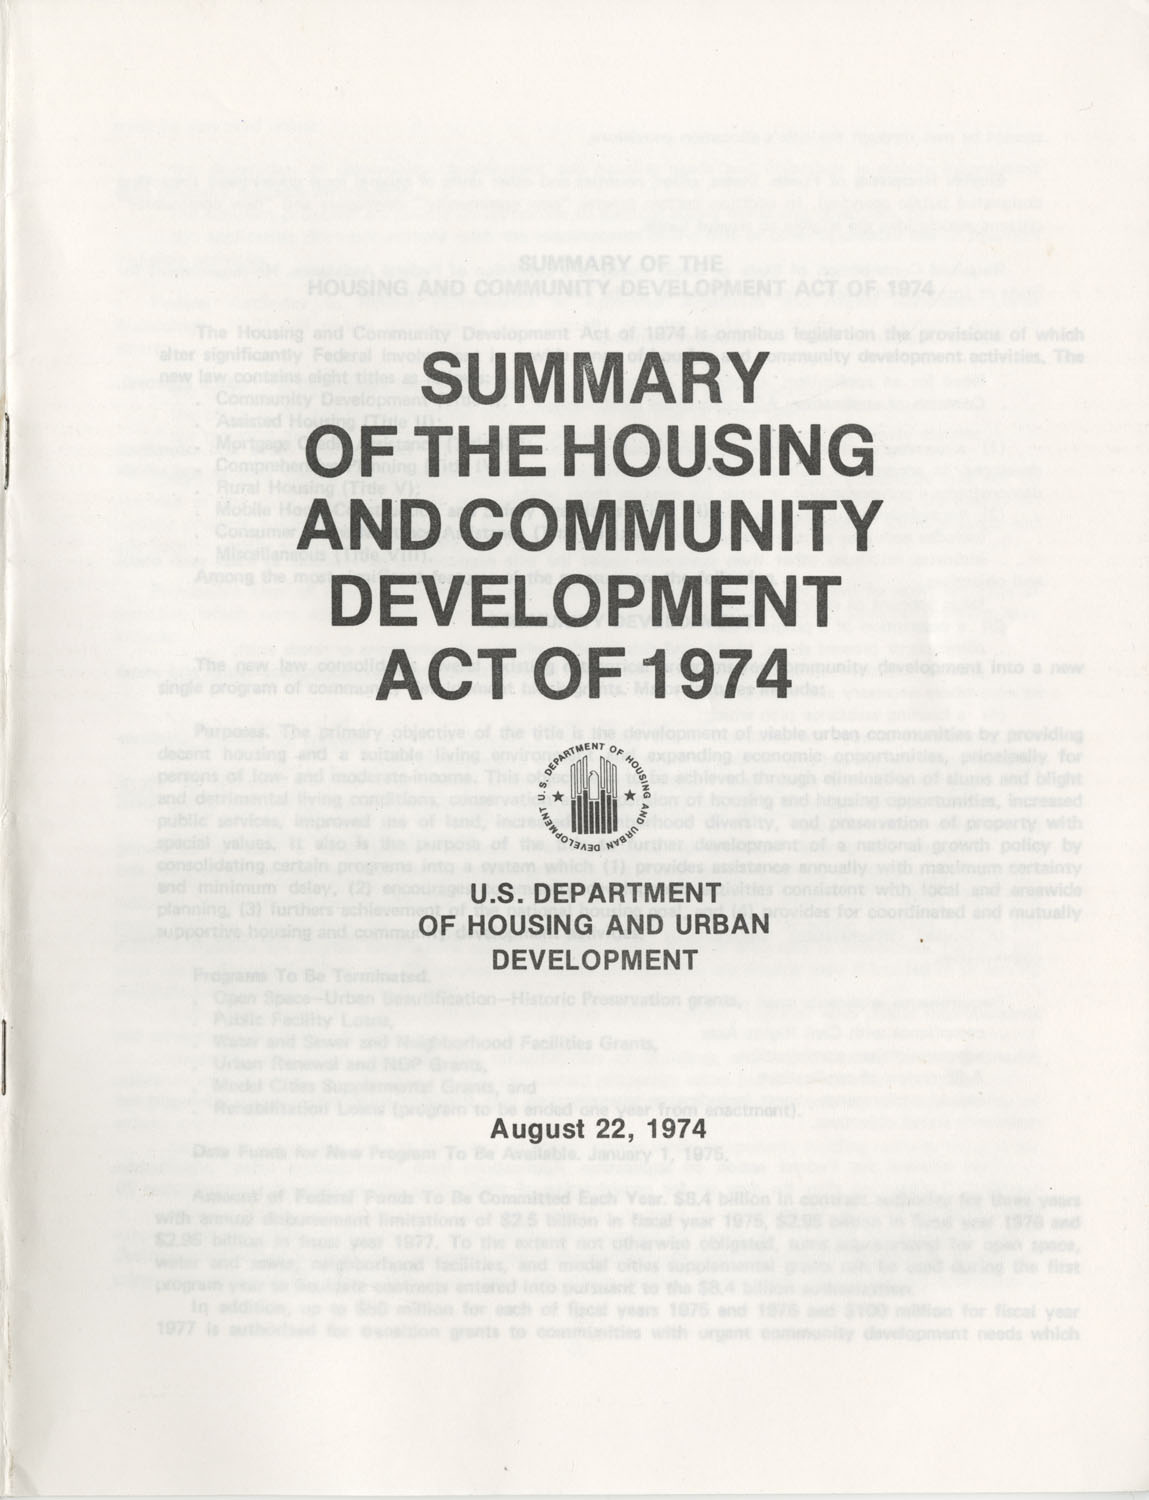 Summary of the Housing and Community Development Act of 1974, Cover